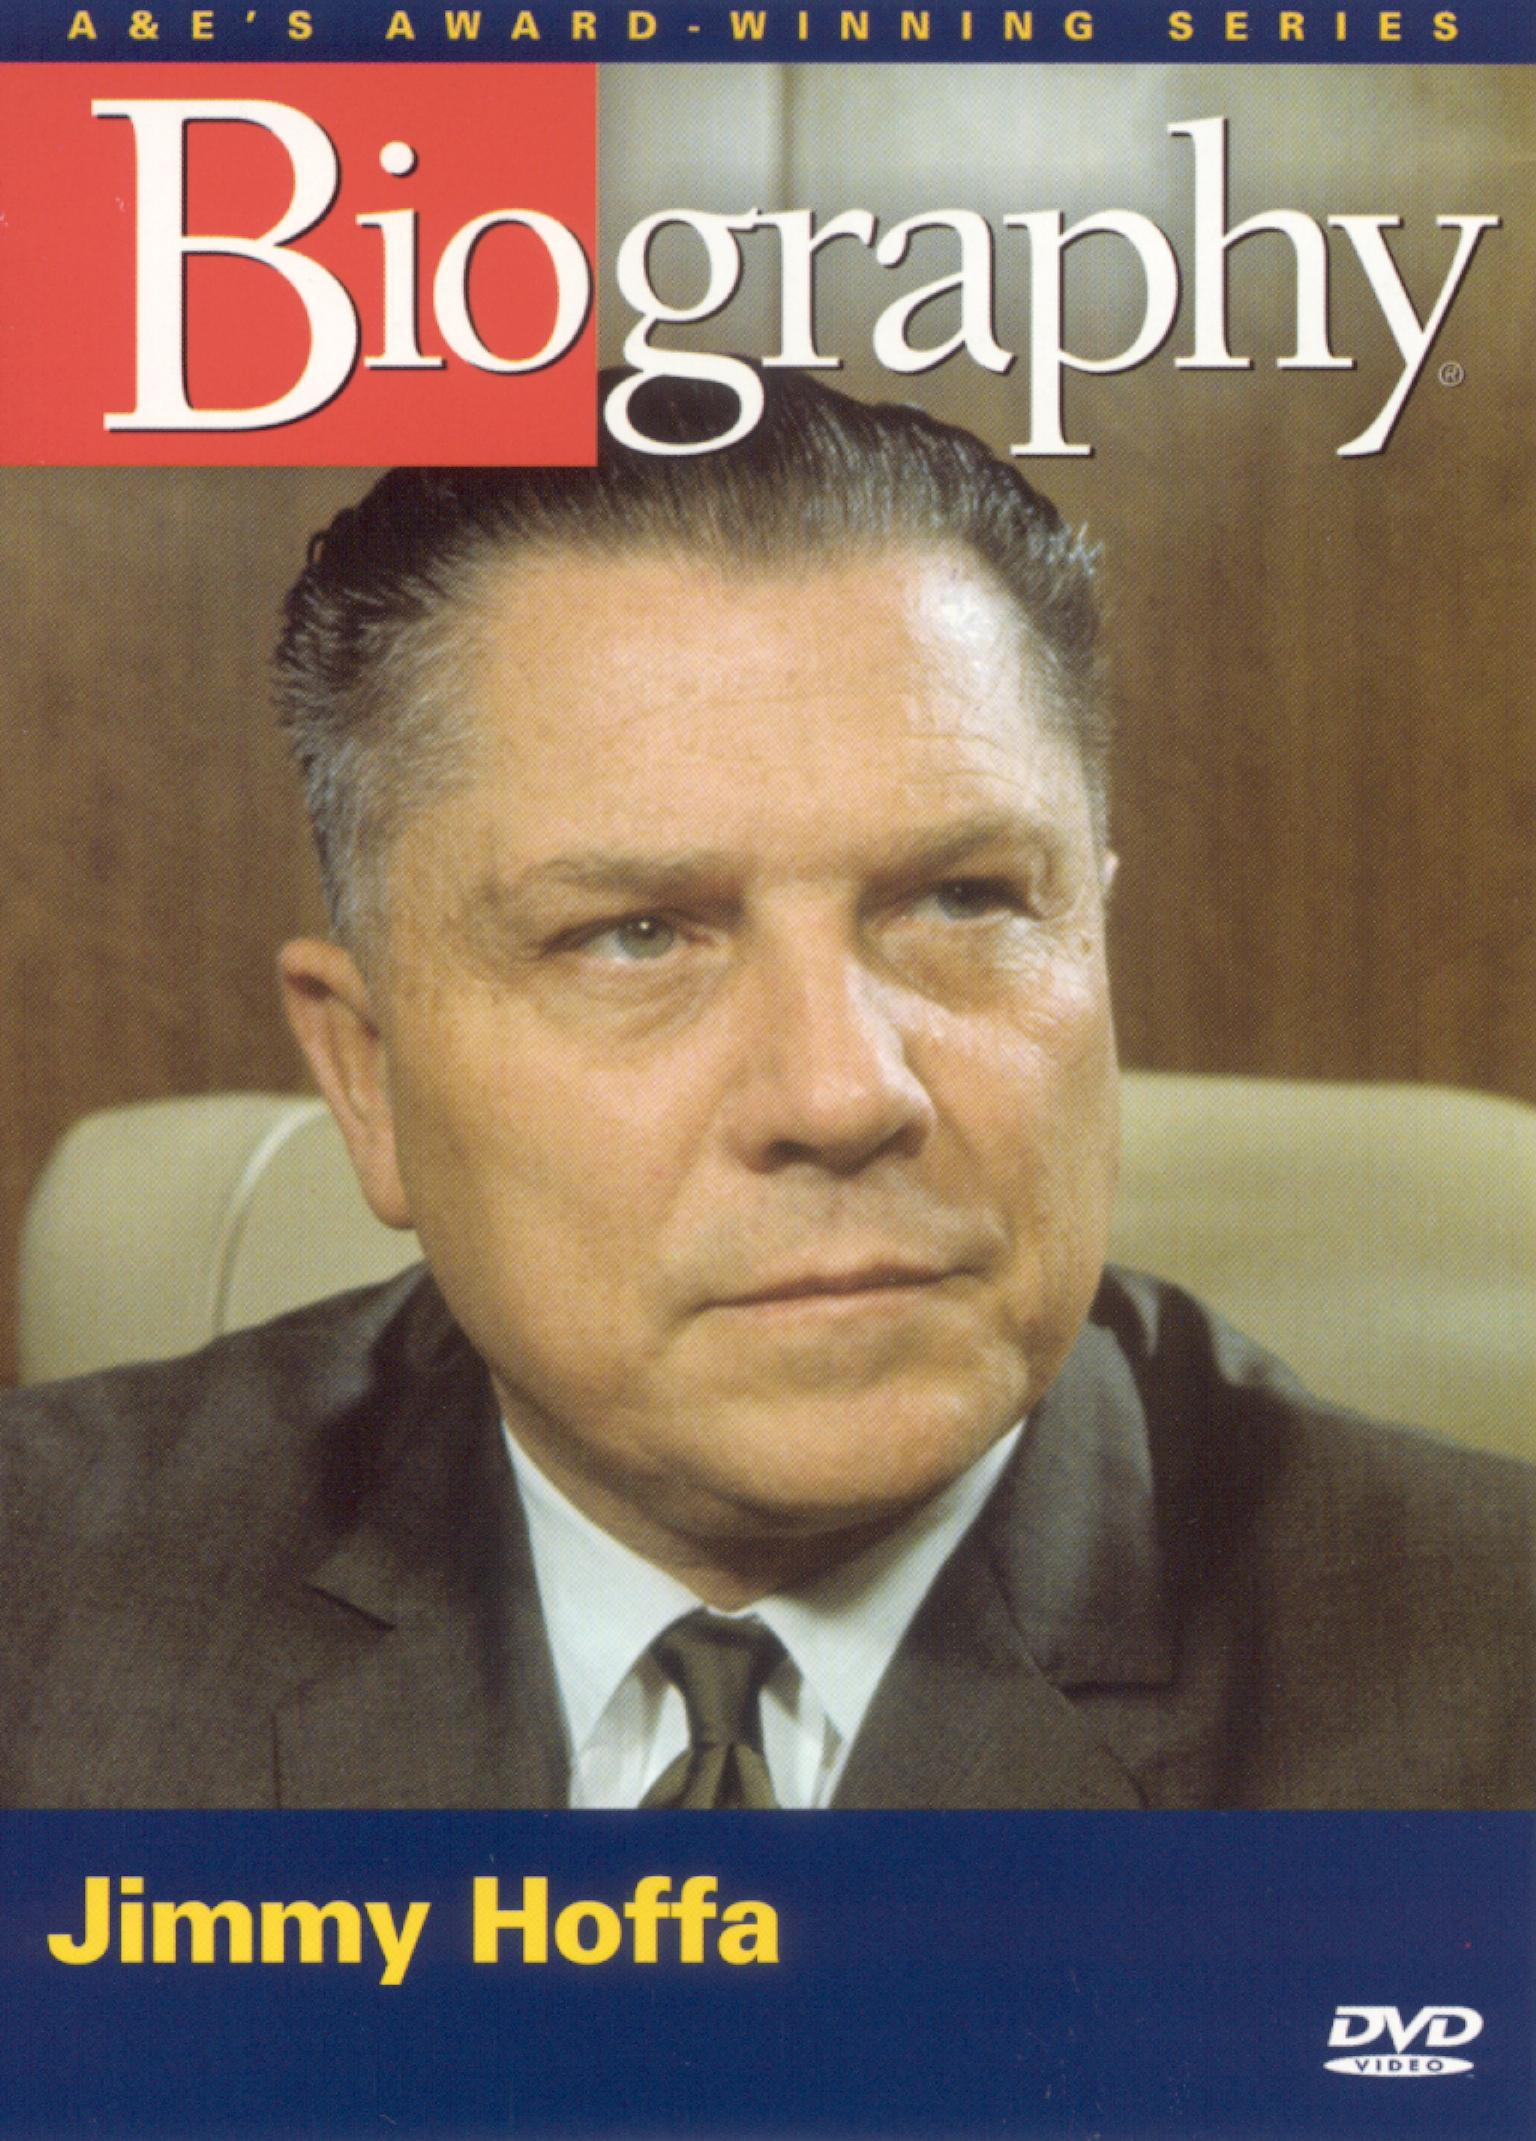 Biography: Jimmy Hoffa - The Man Behind the Mystery